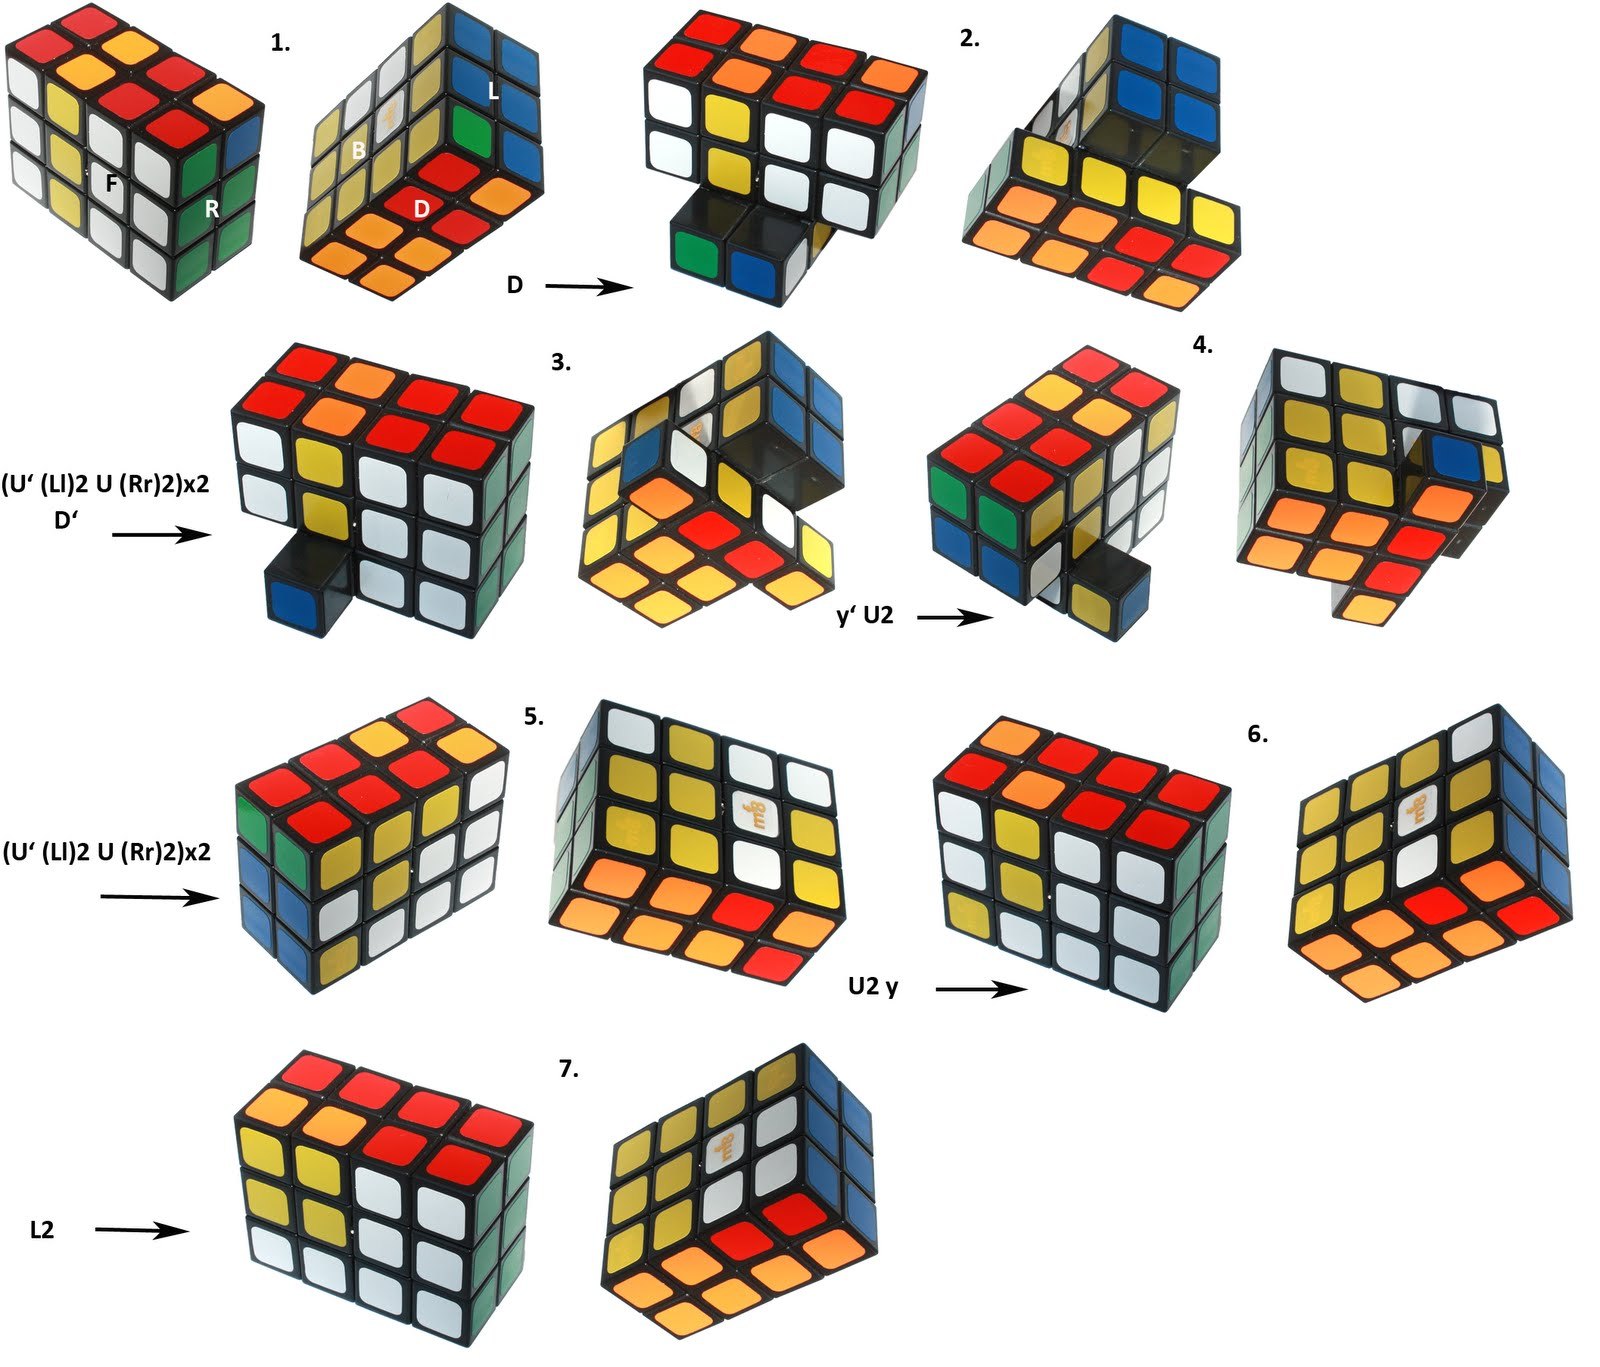 How to solve a Rubik's Cube (Part One).